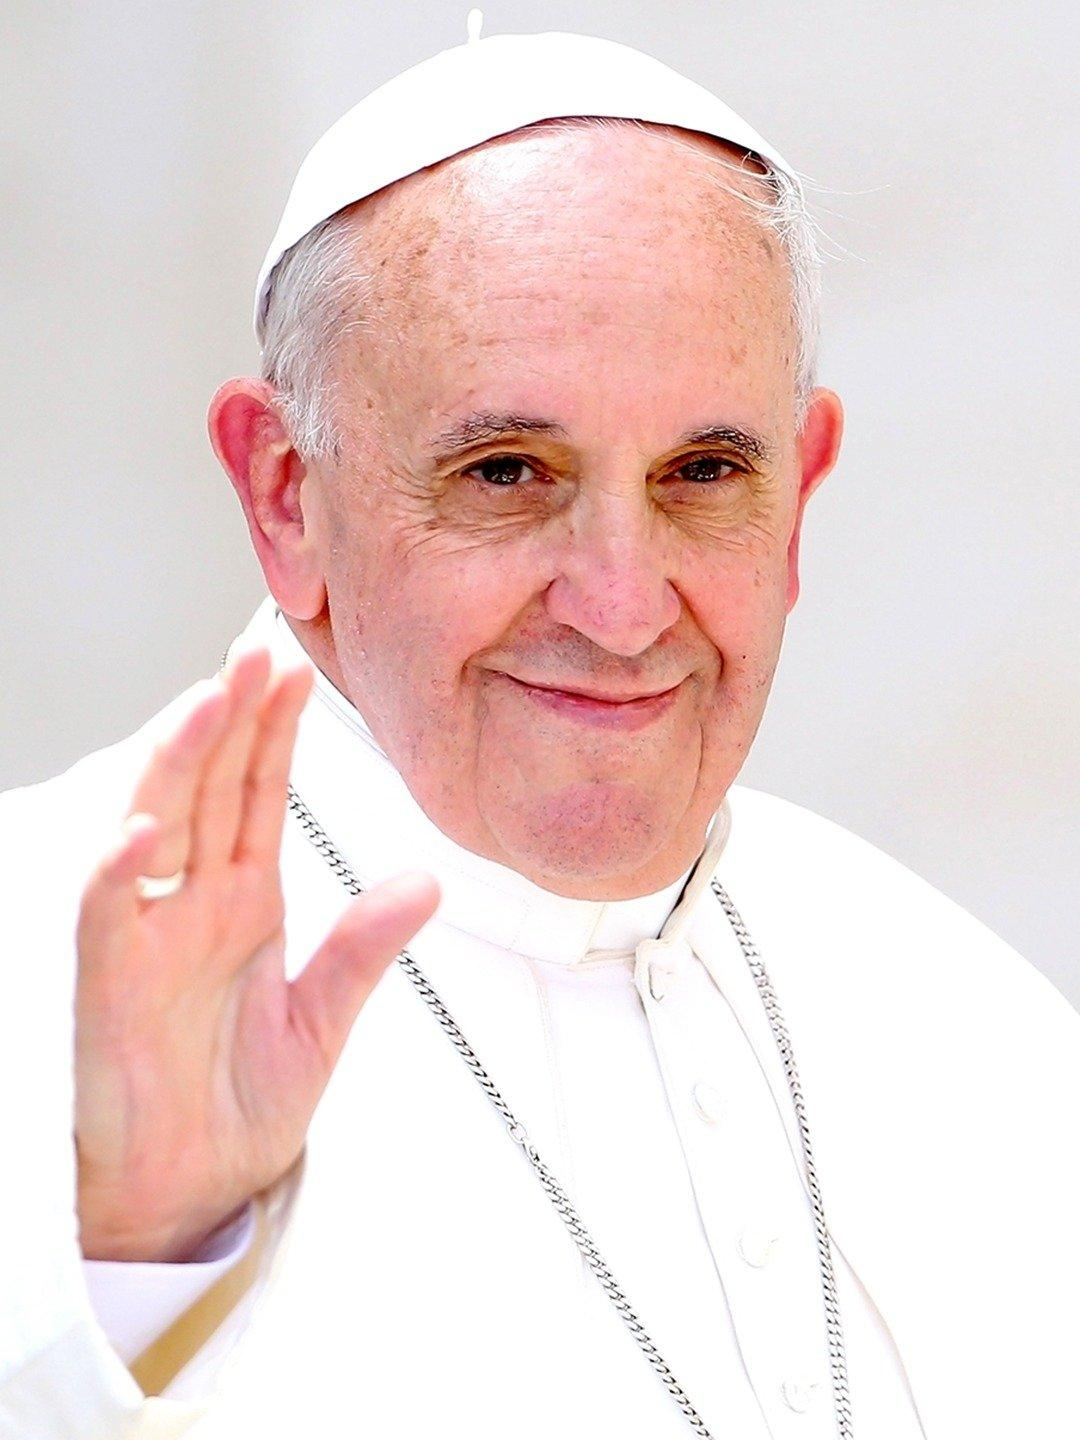 Local reaction to pope francis letter to catholics wxxi news local reaction to pope francis letter to catholics m4hsunfo